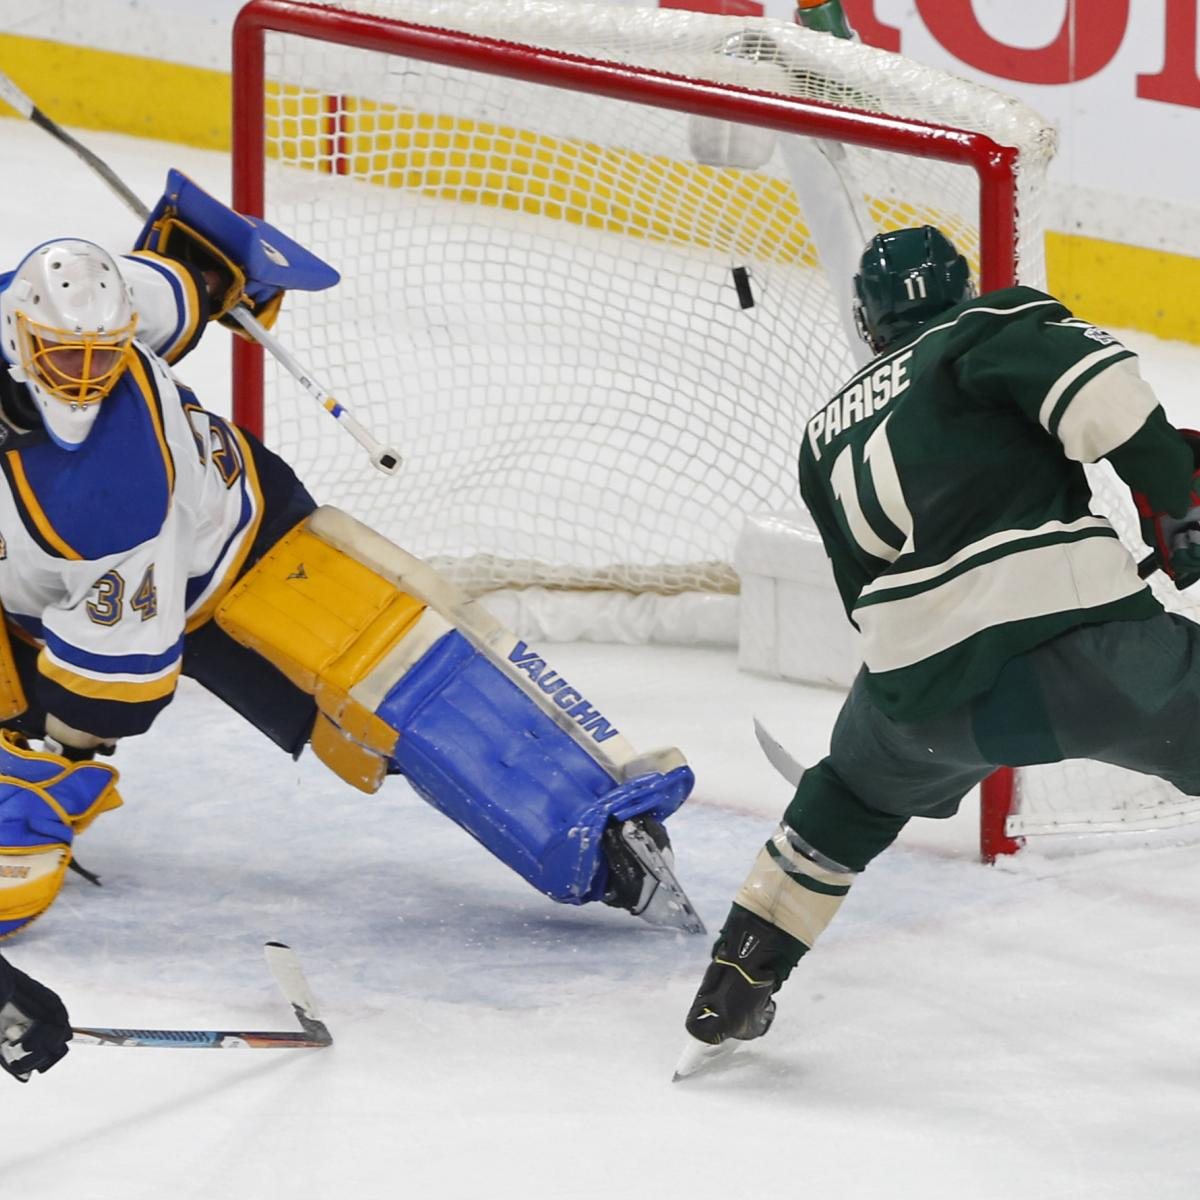 Nhl playoffs 2017 updated schedule stanley cup odds and picks nhl playoffs 2017 updated schedule stanley cup odds and picks bleacher report latest news videos and highlights geenschuldenfo Image collections